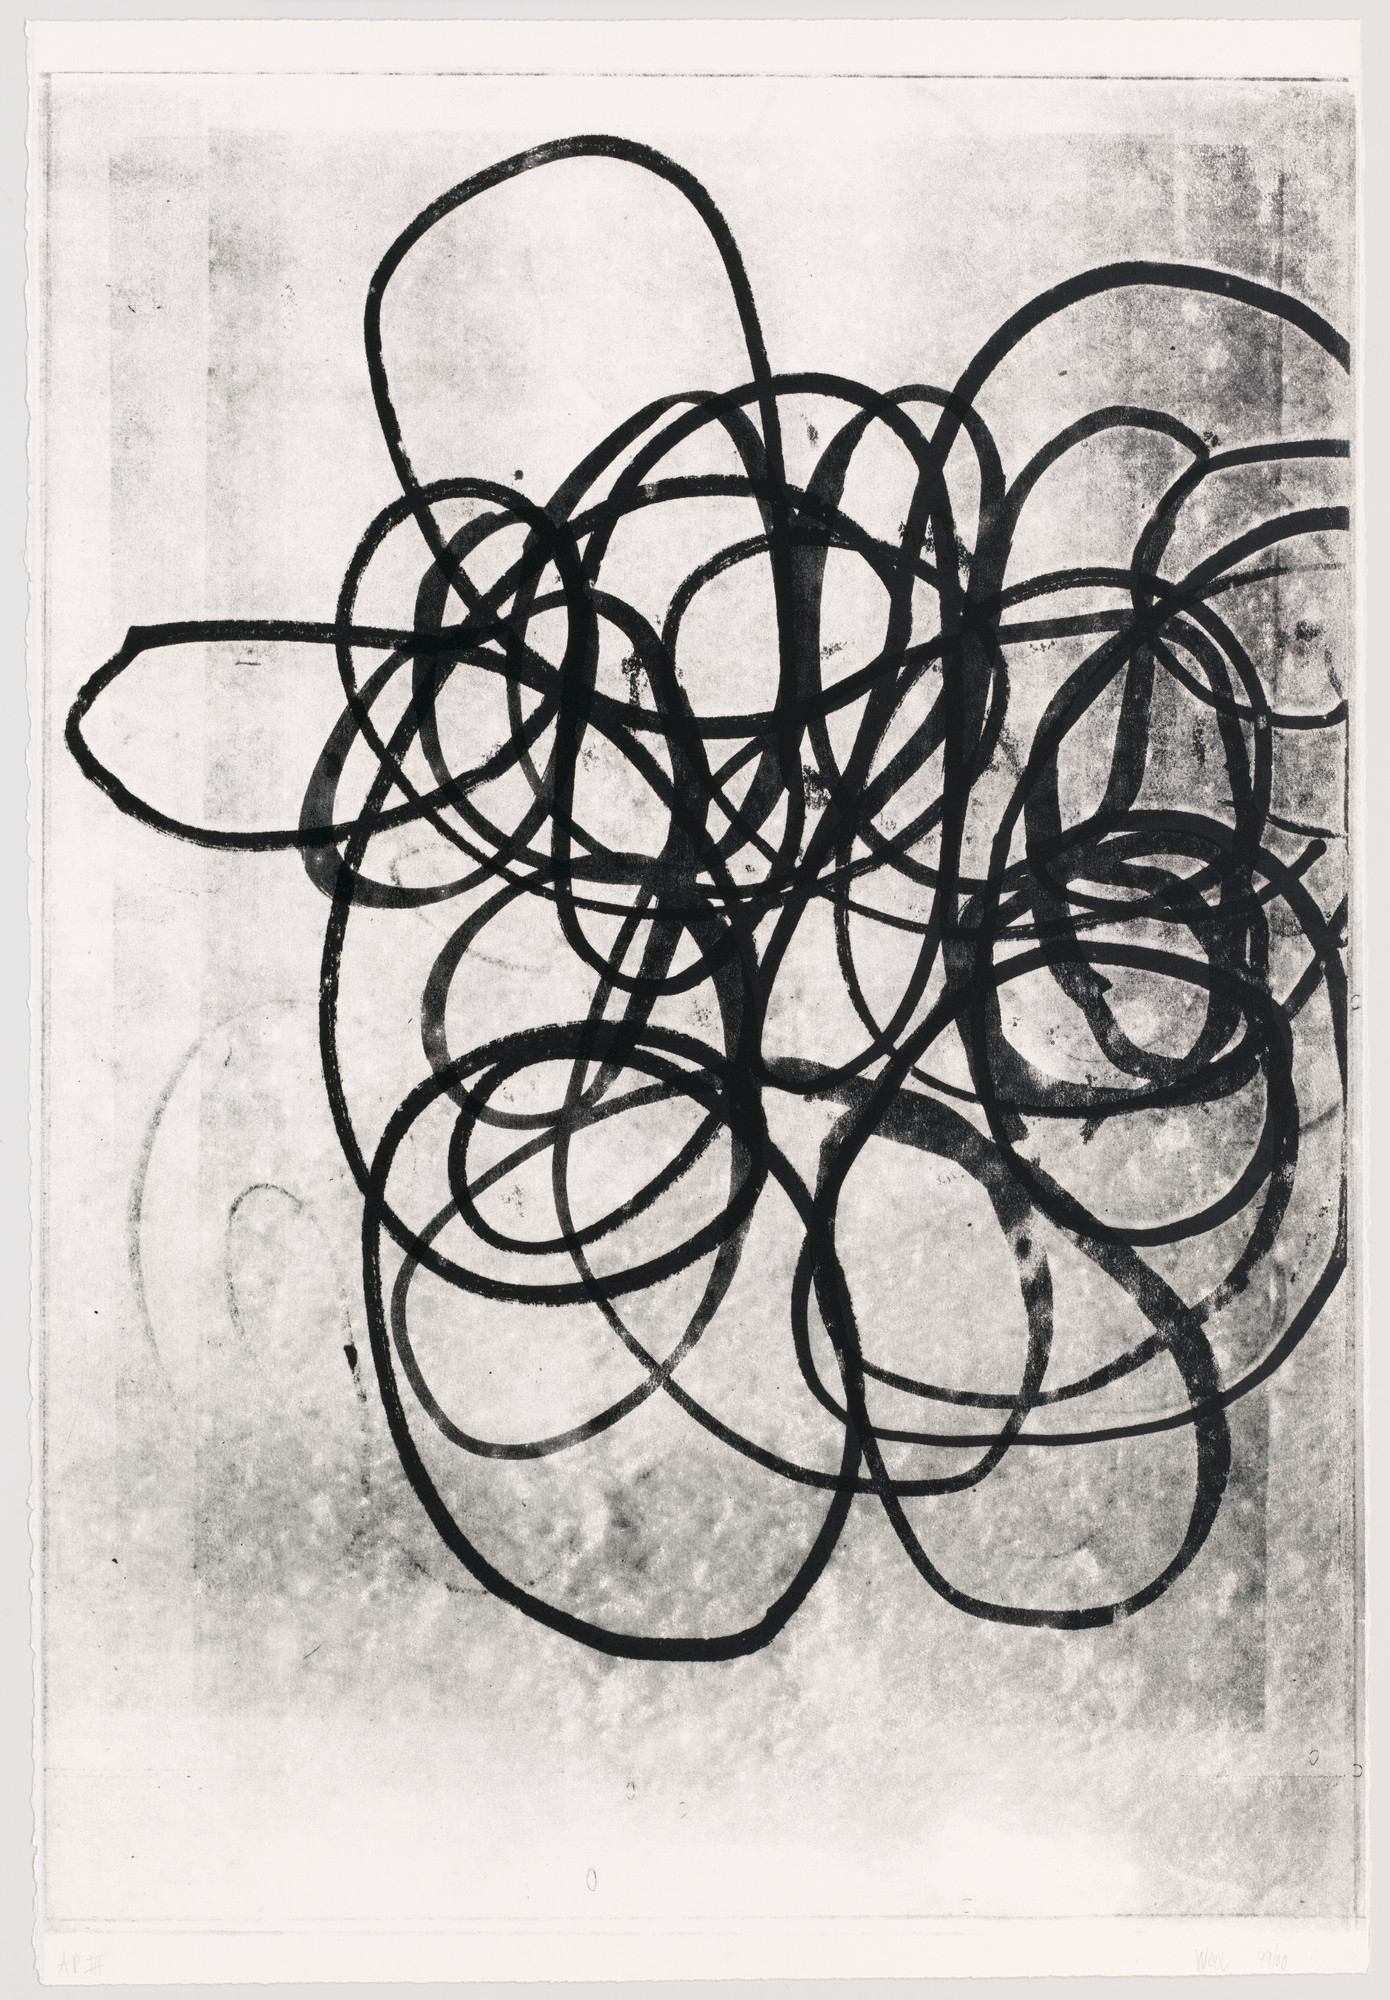 Christopher Wool. Untitled from 99/00. 2000